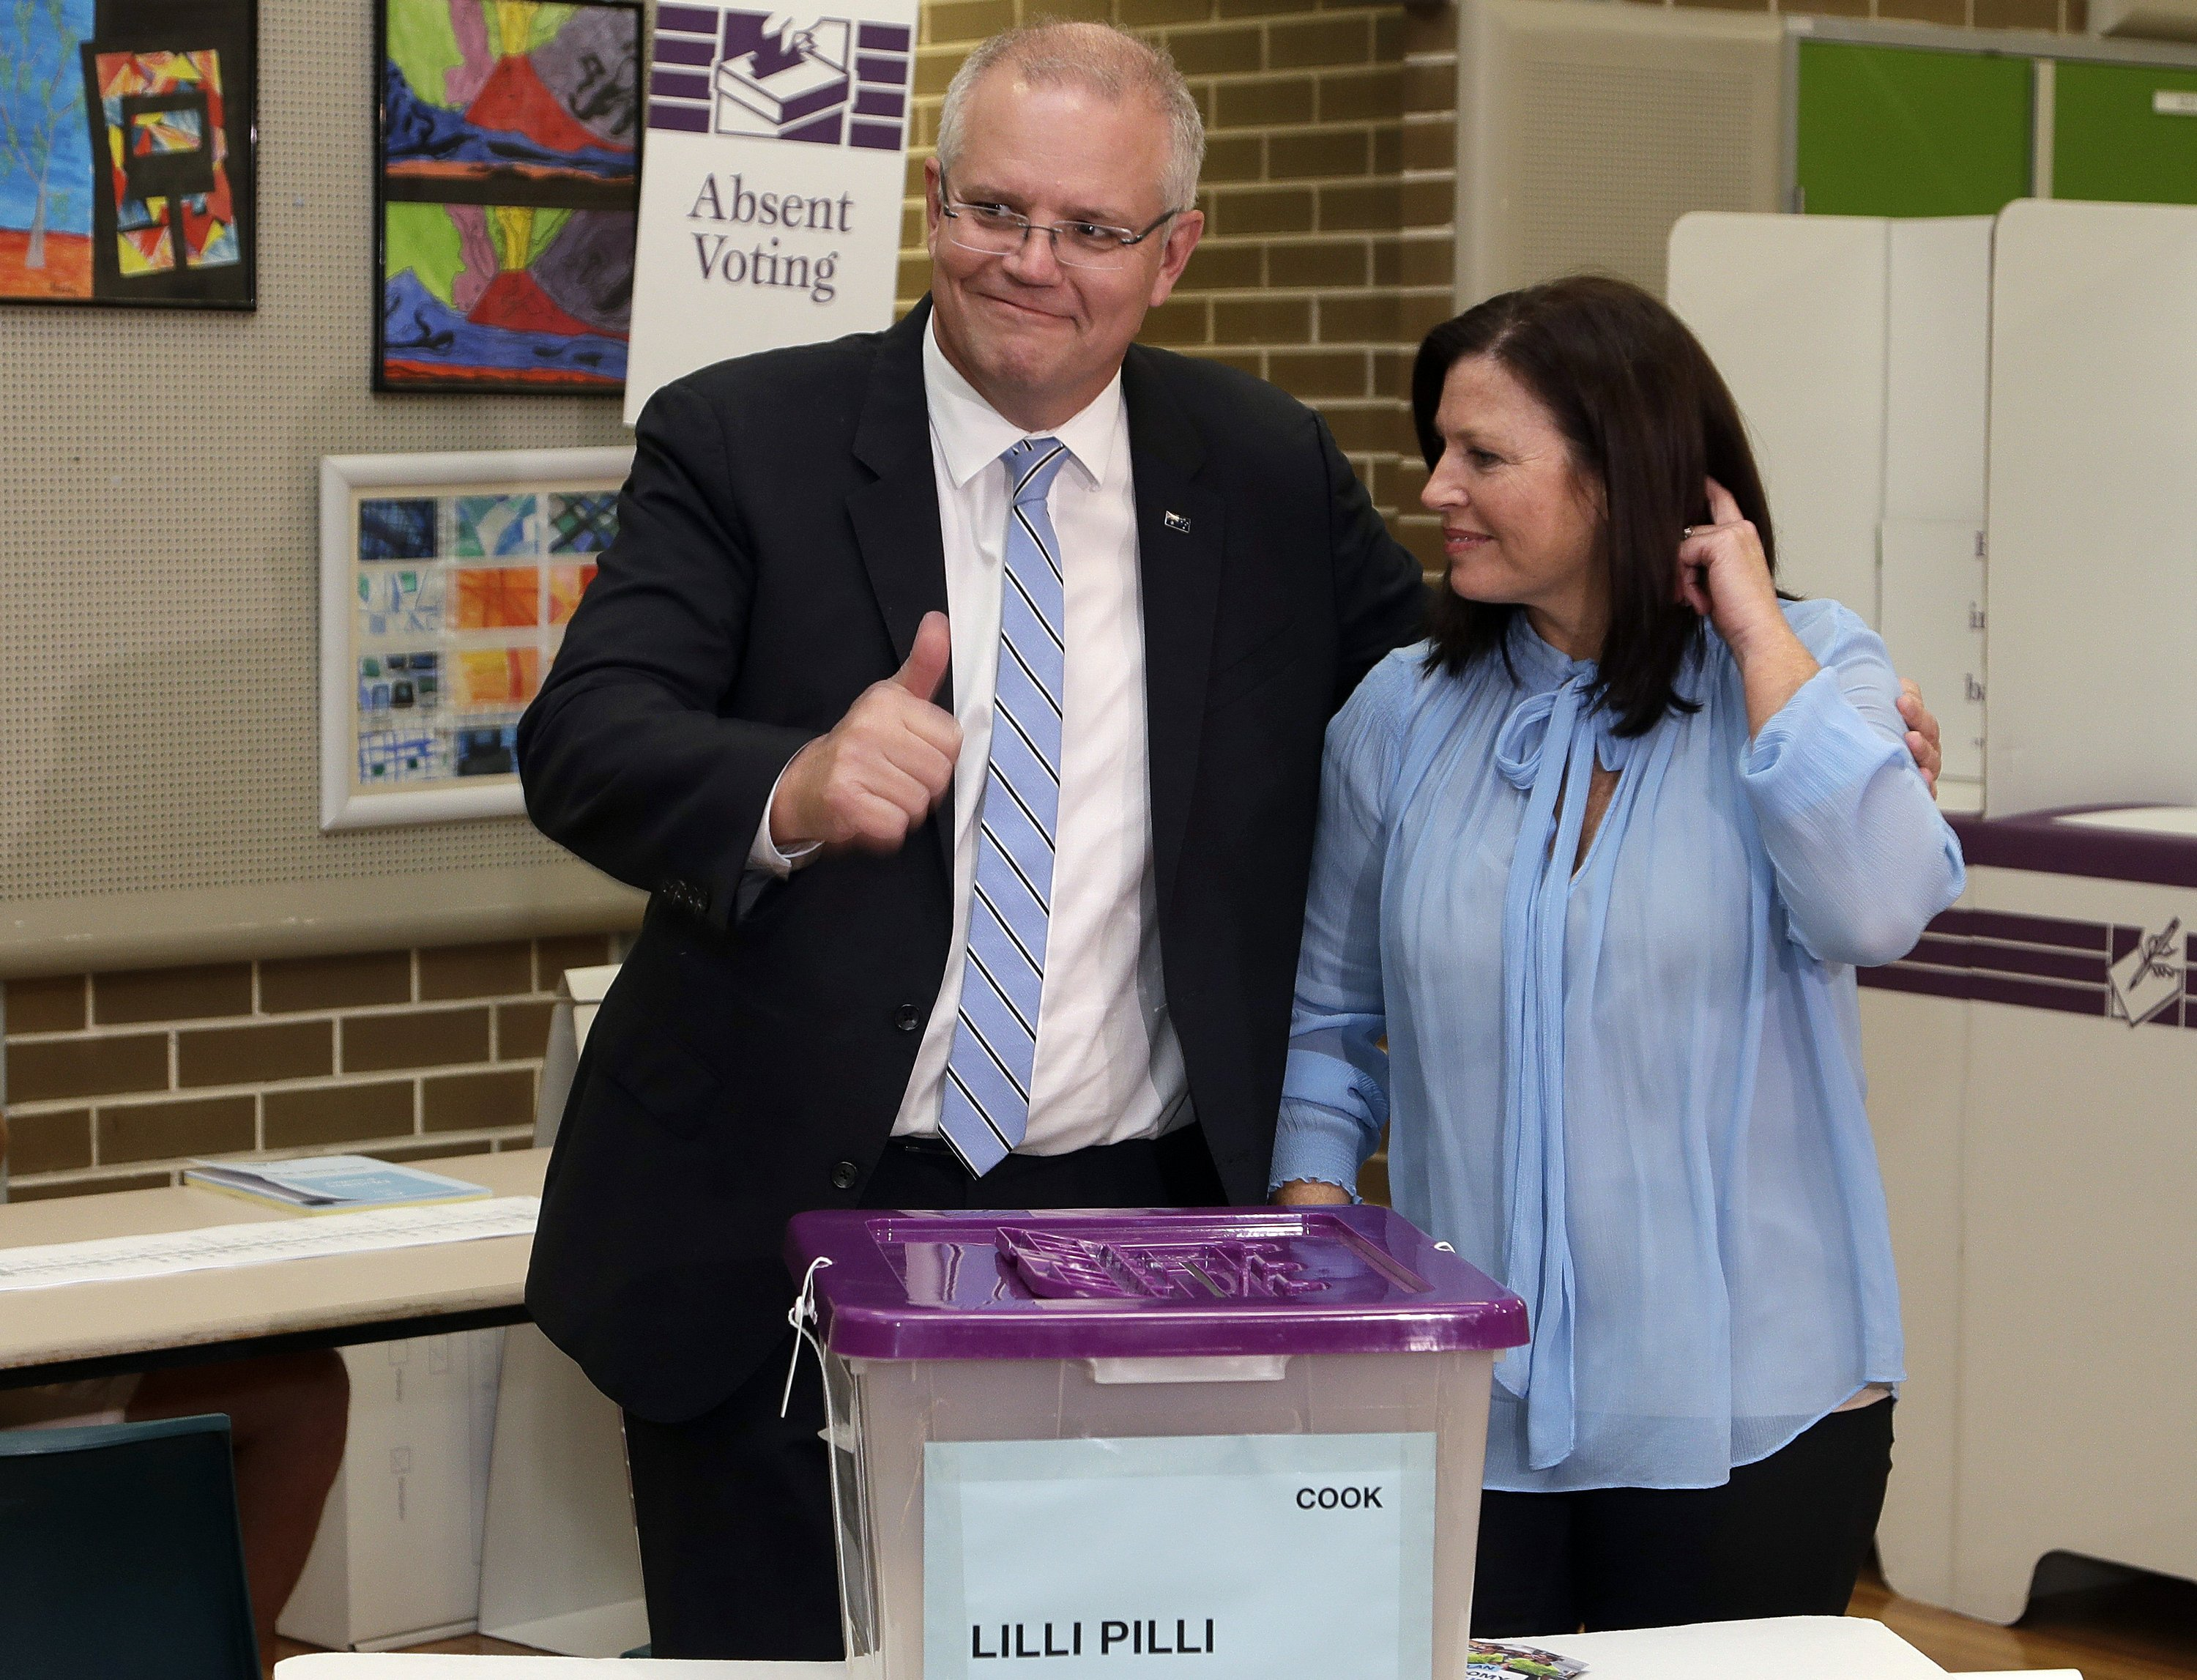 Australia's ruling coalition elected to surprise third term